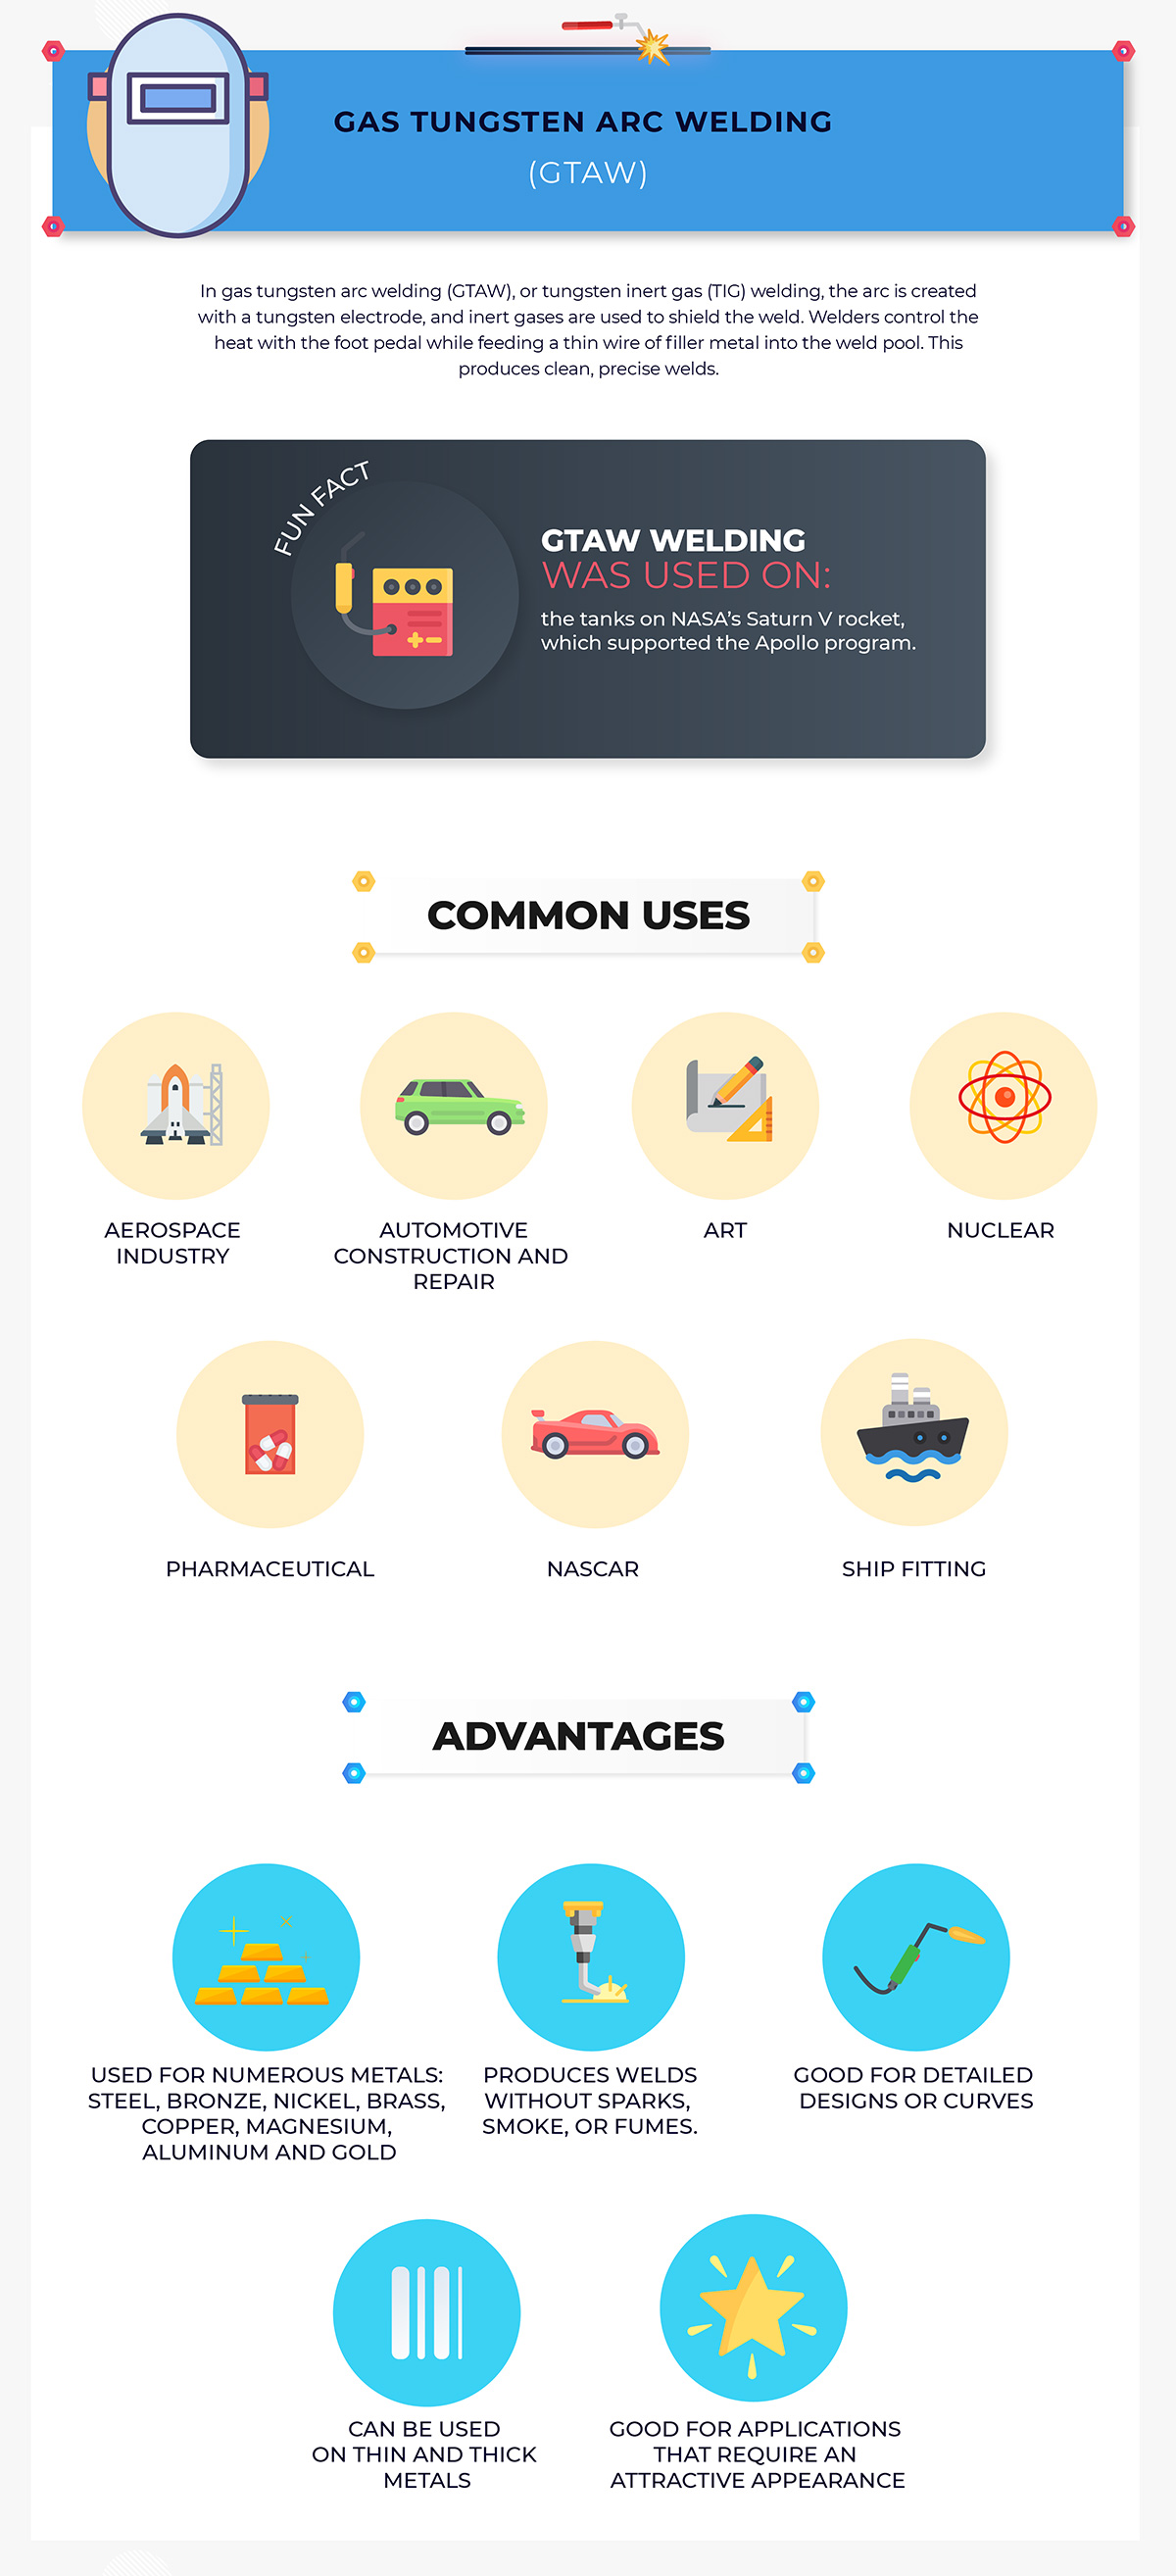 GTAW uses and advantages